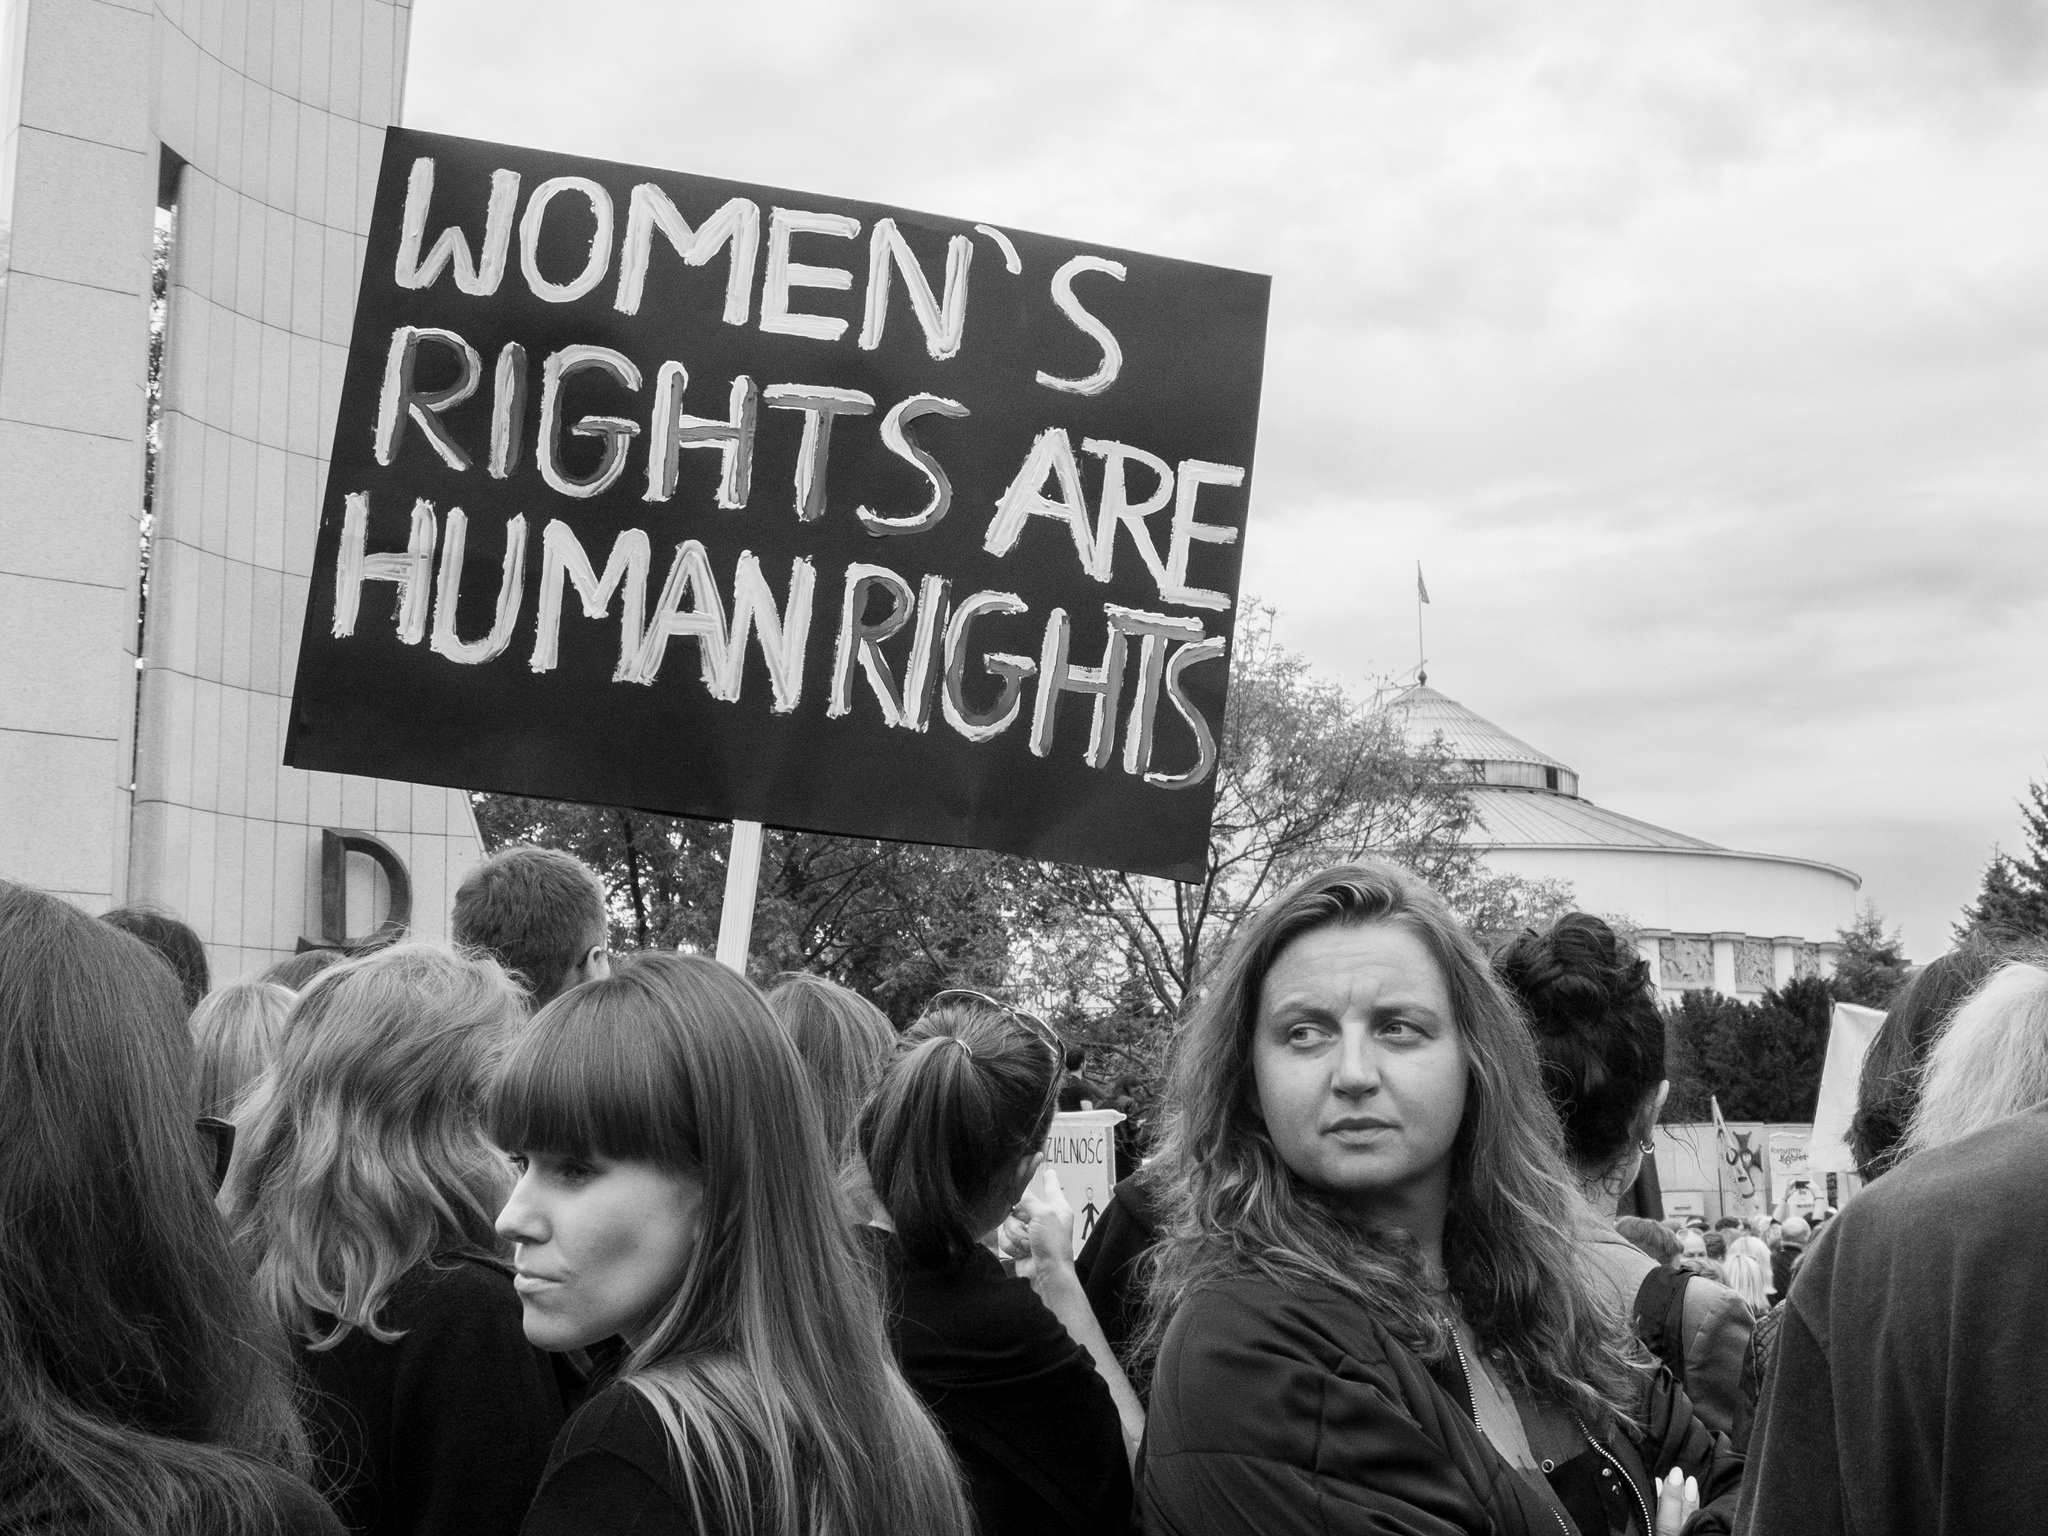 Women Right's | Photo by Grzegorz Zukowski | https://www.flickr.com/photos/gregor_zukowski/29614631833